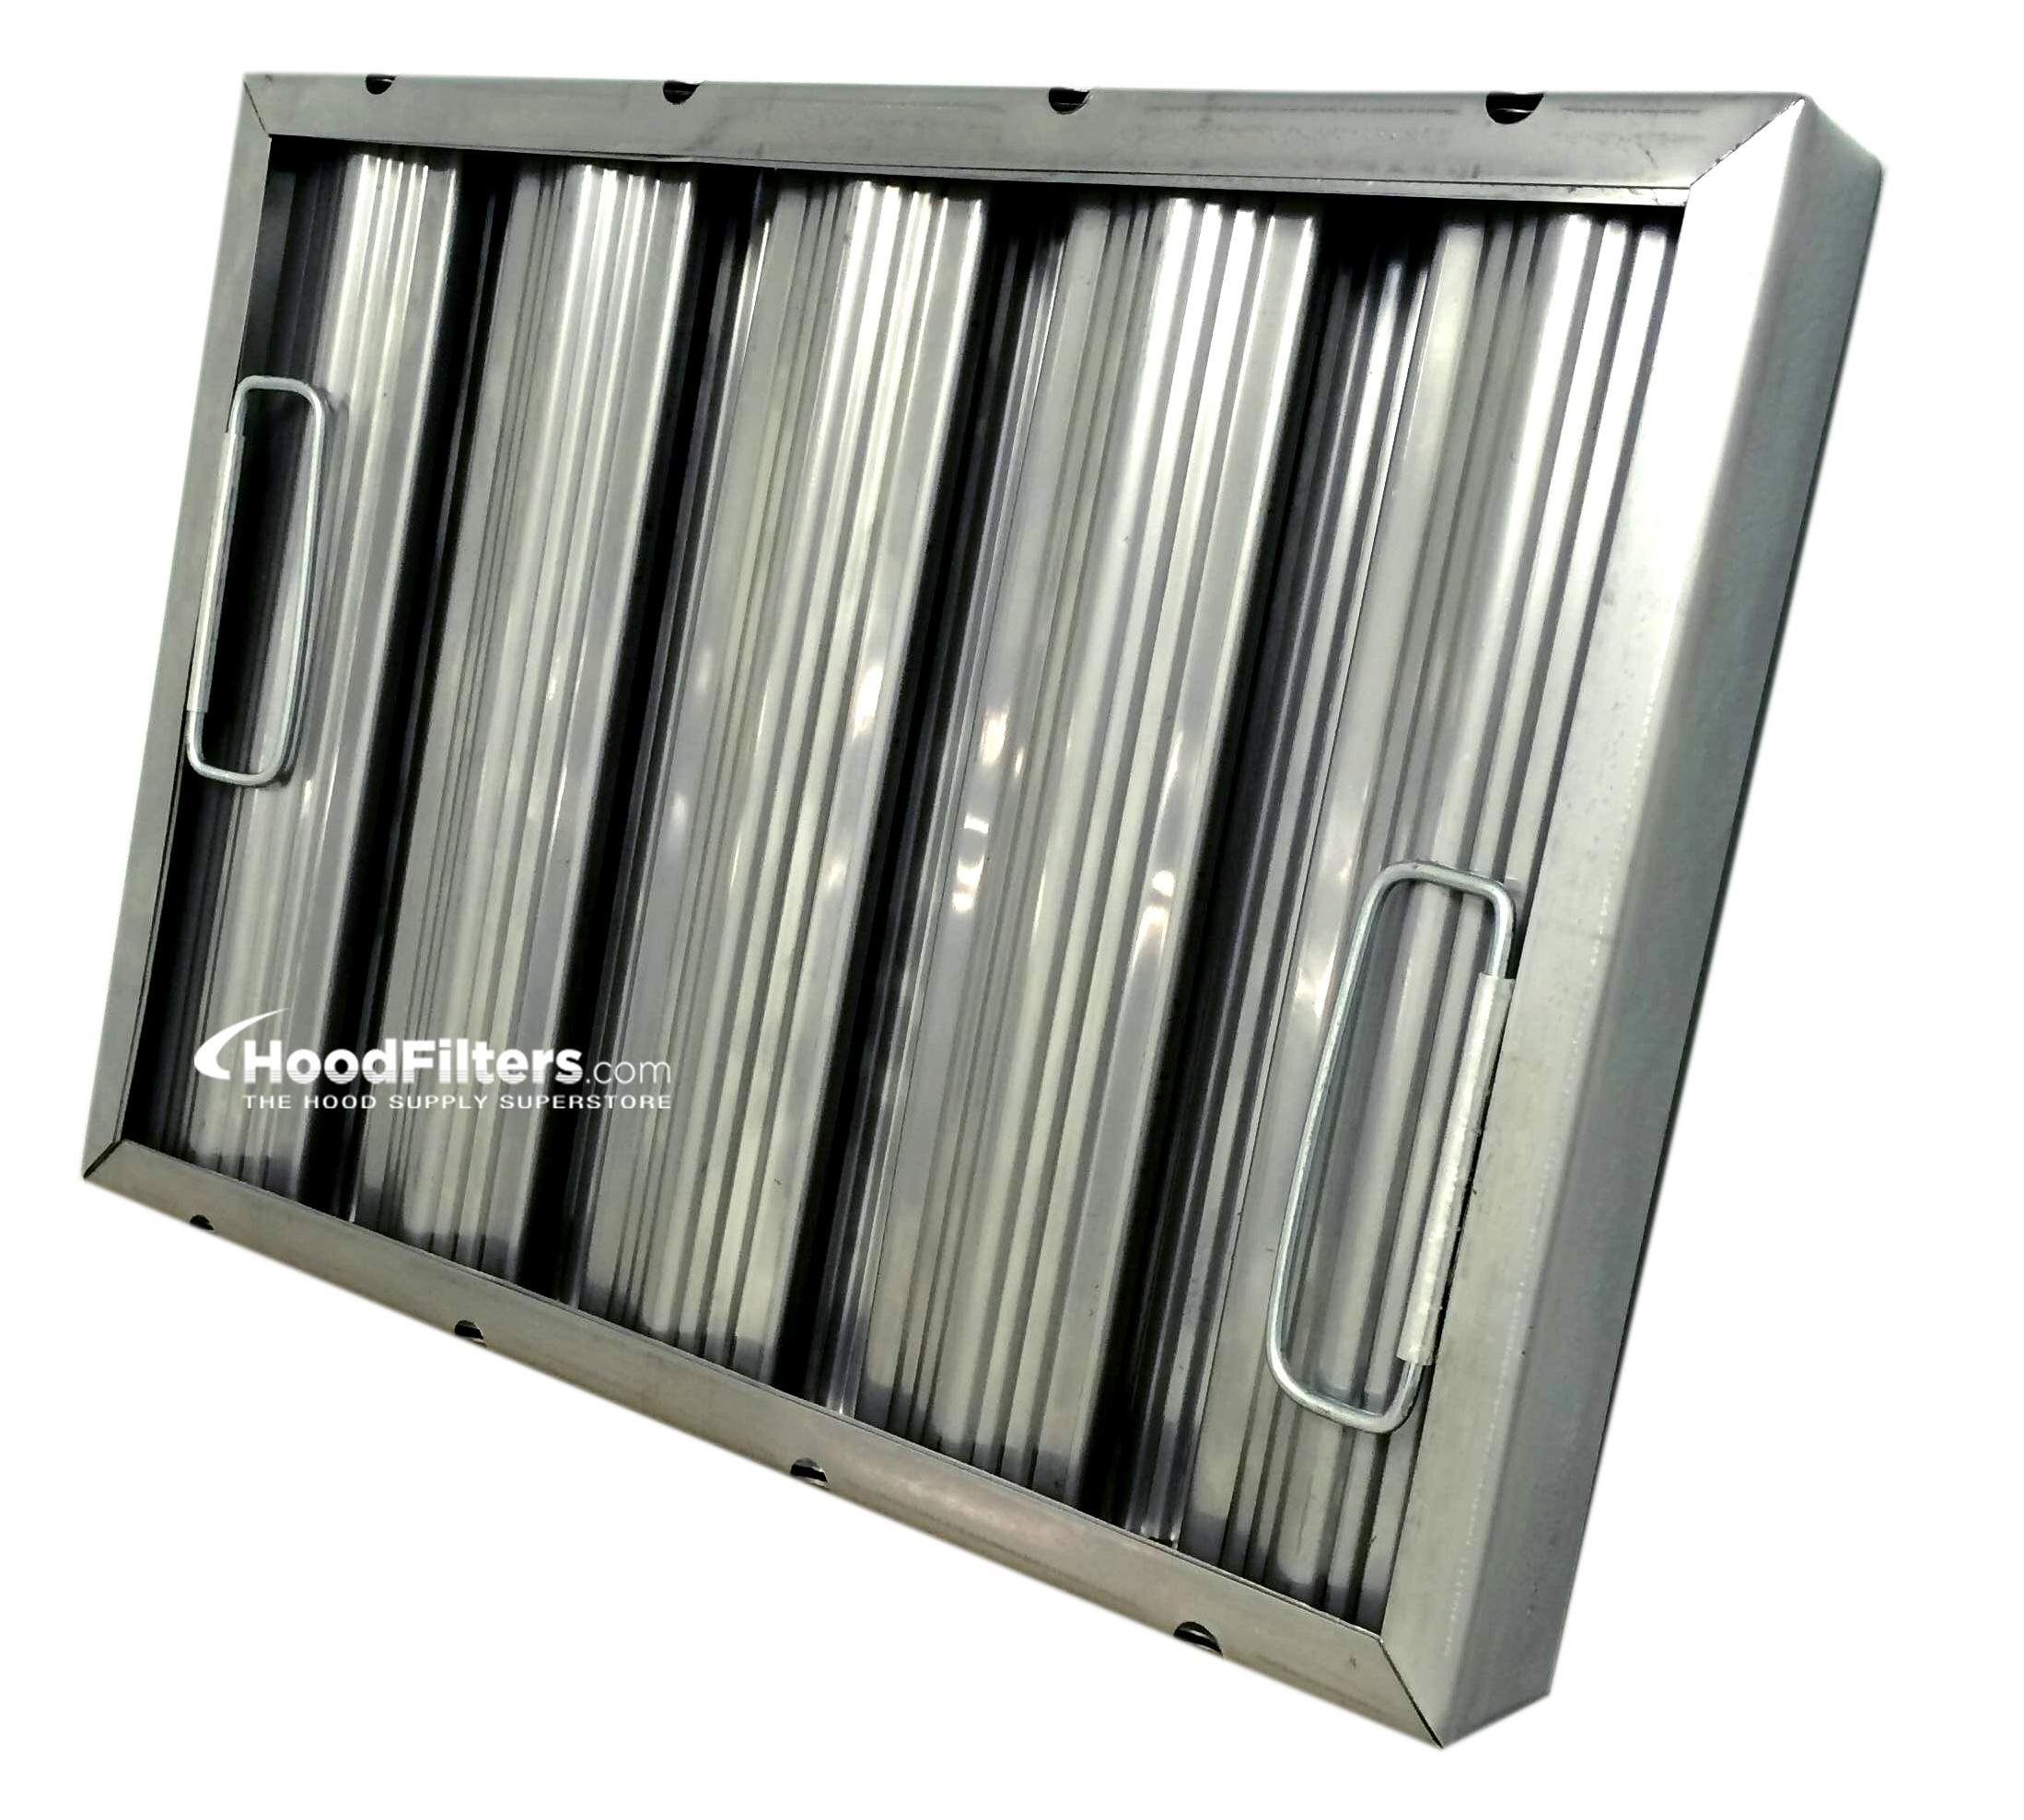 Not all stainless steel baffle filters are created equal.